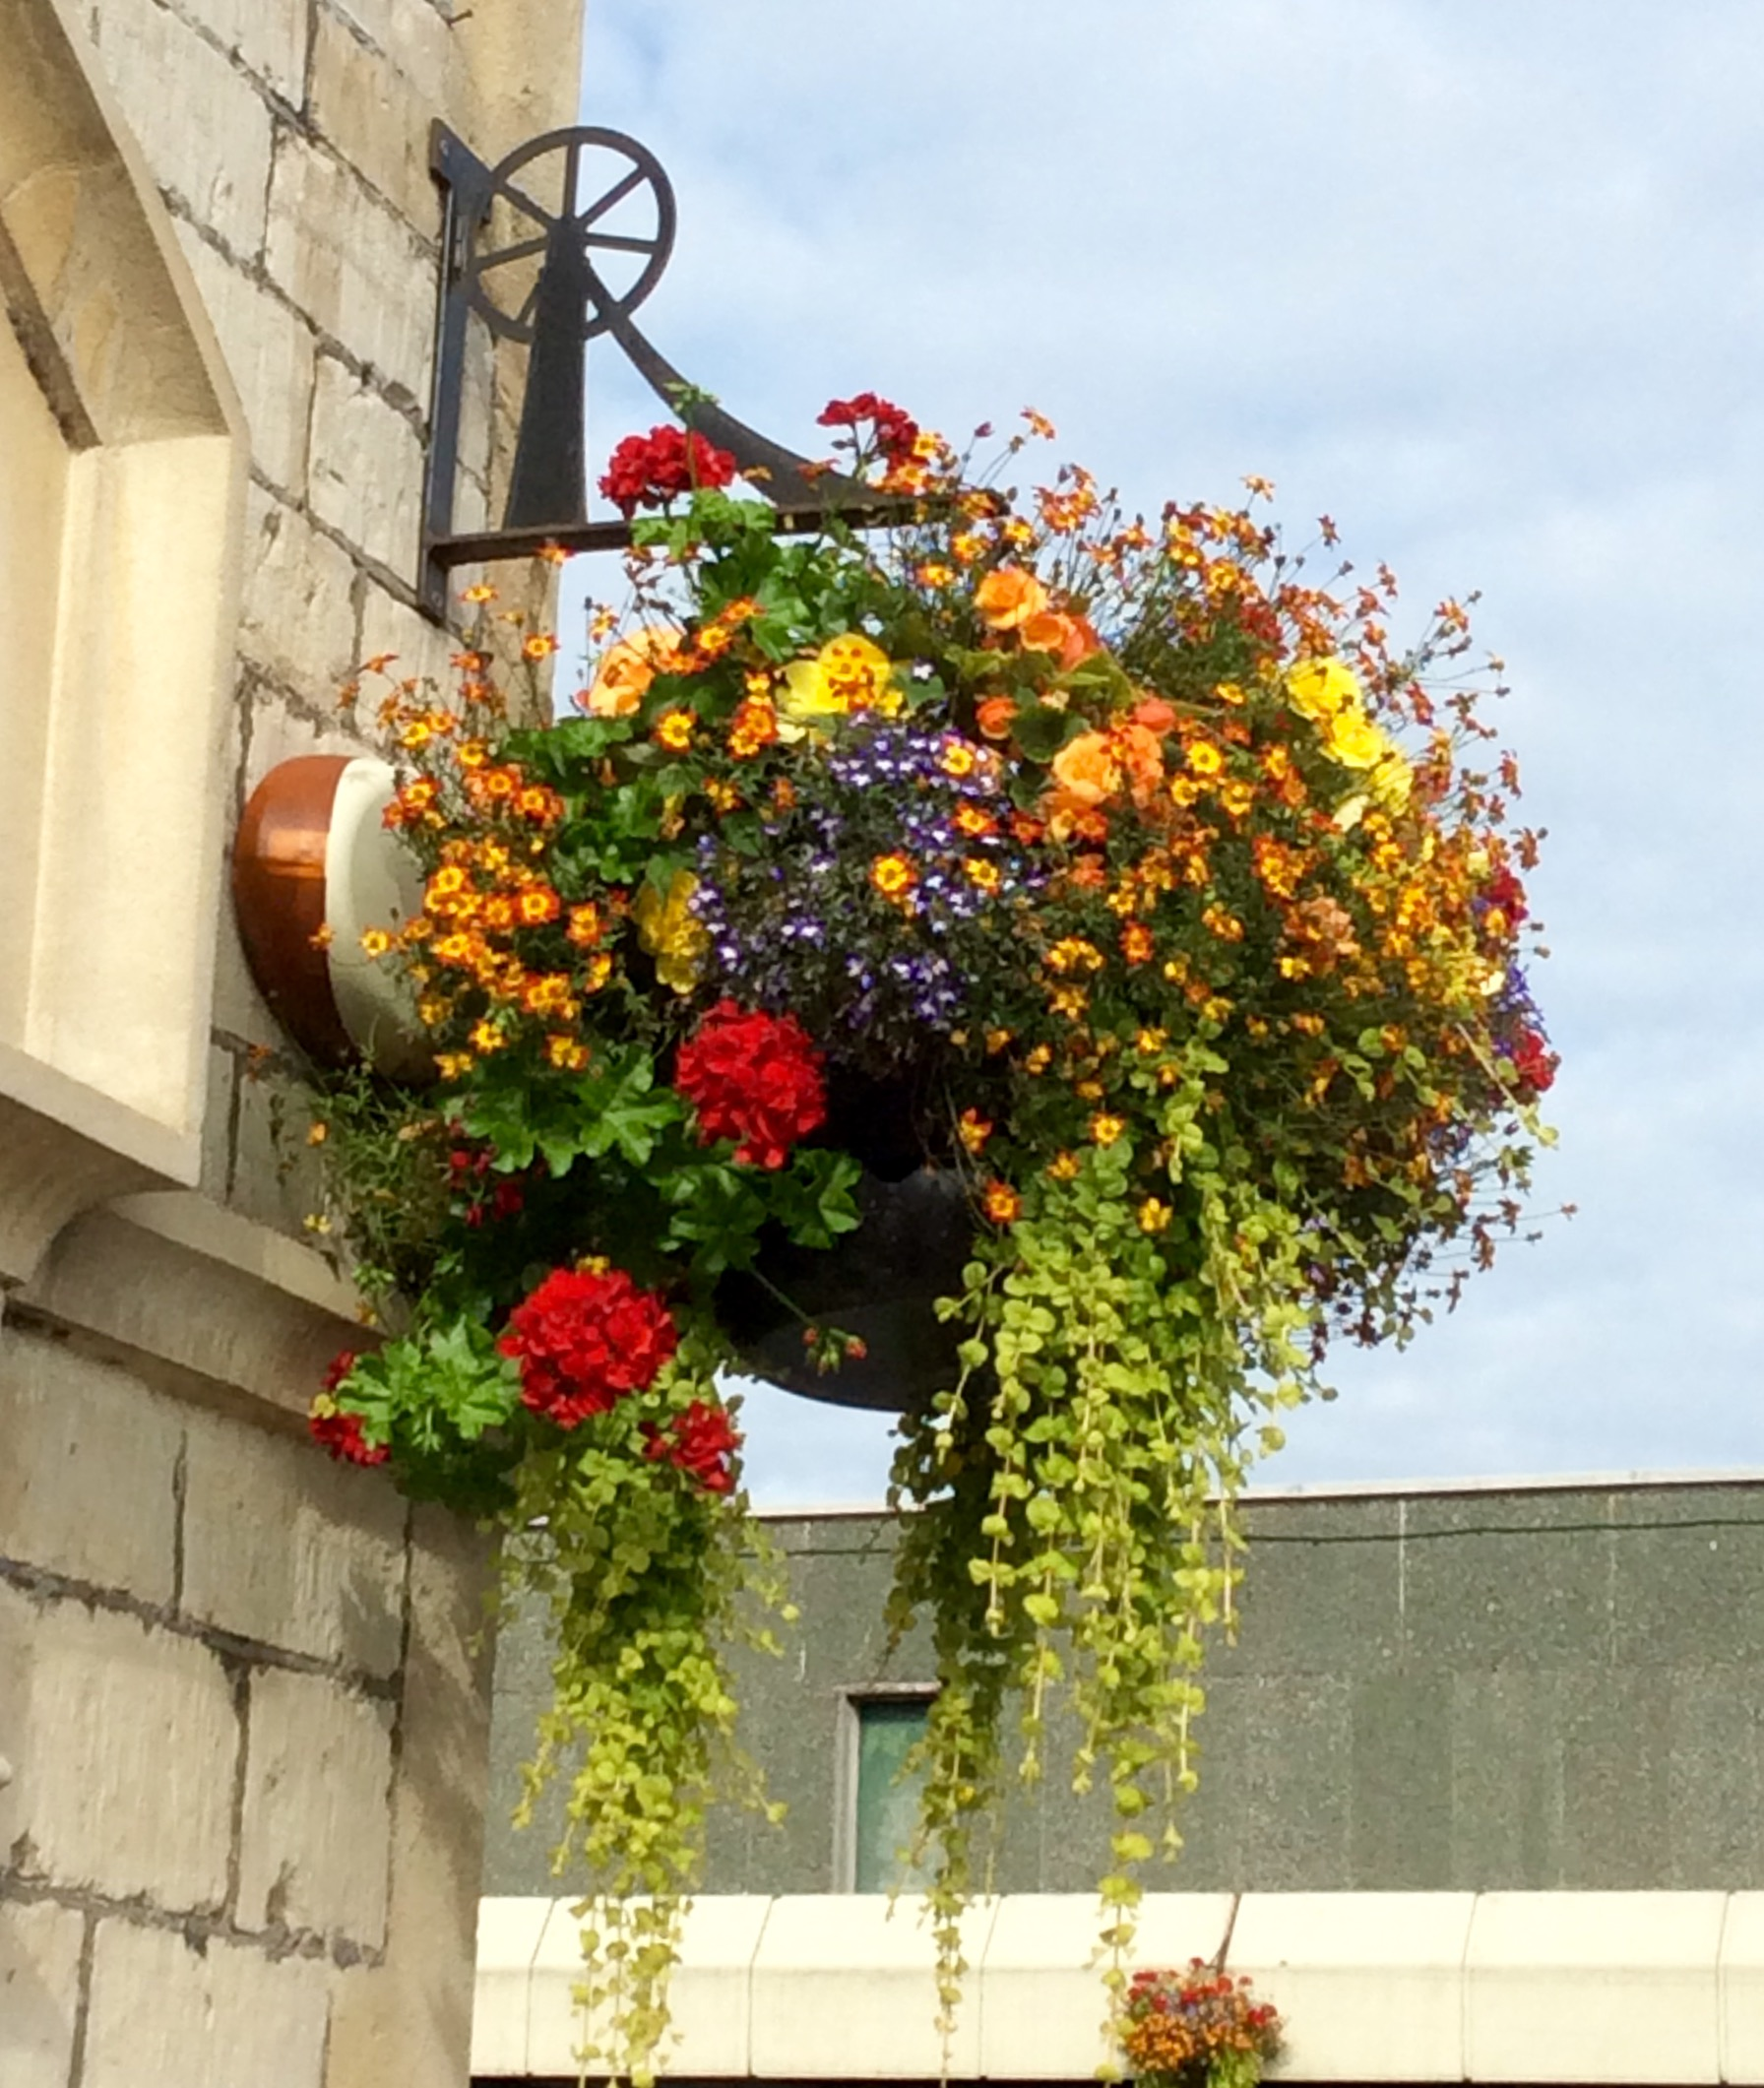 Good Luck Radstock in Bloom